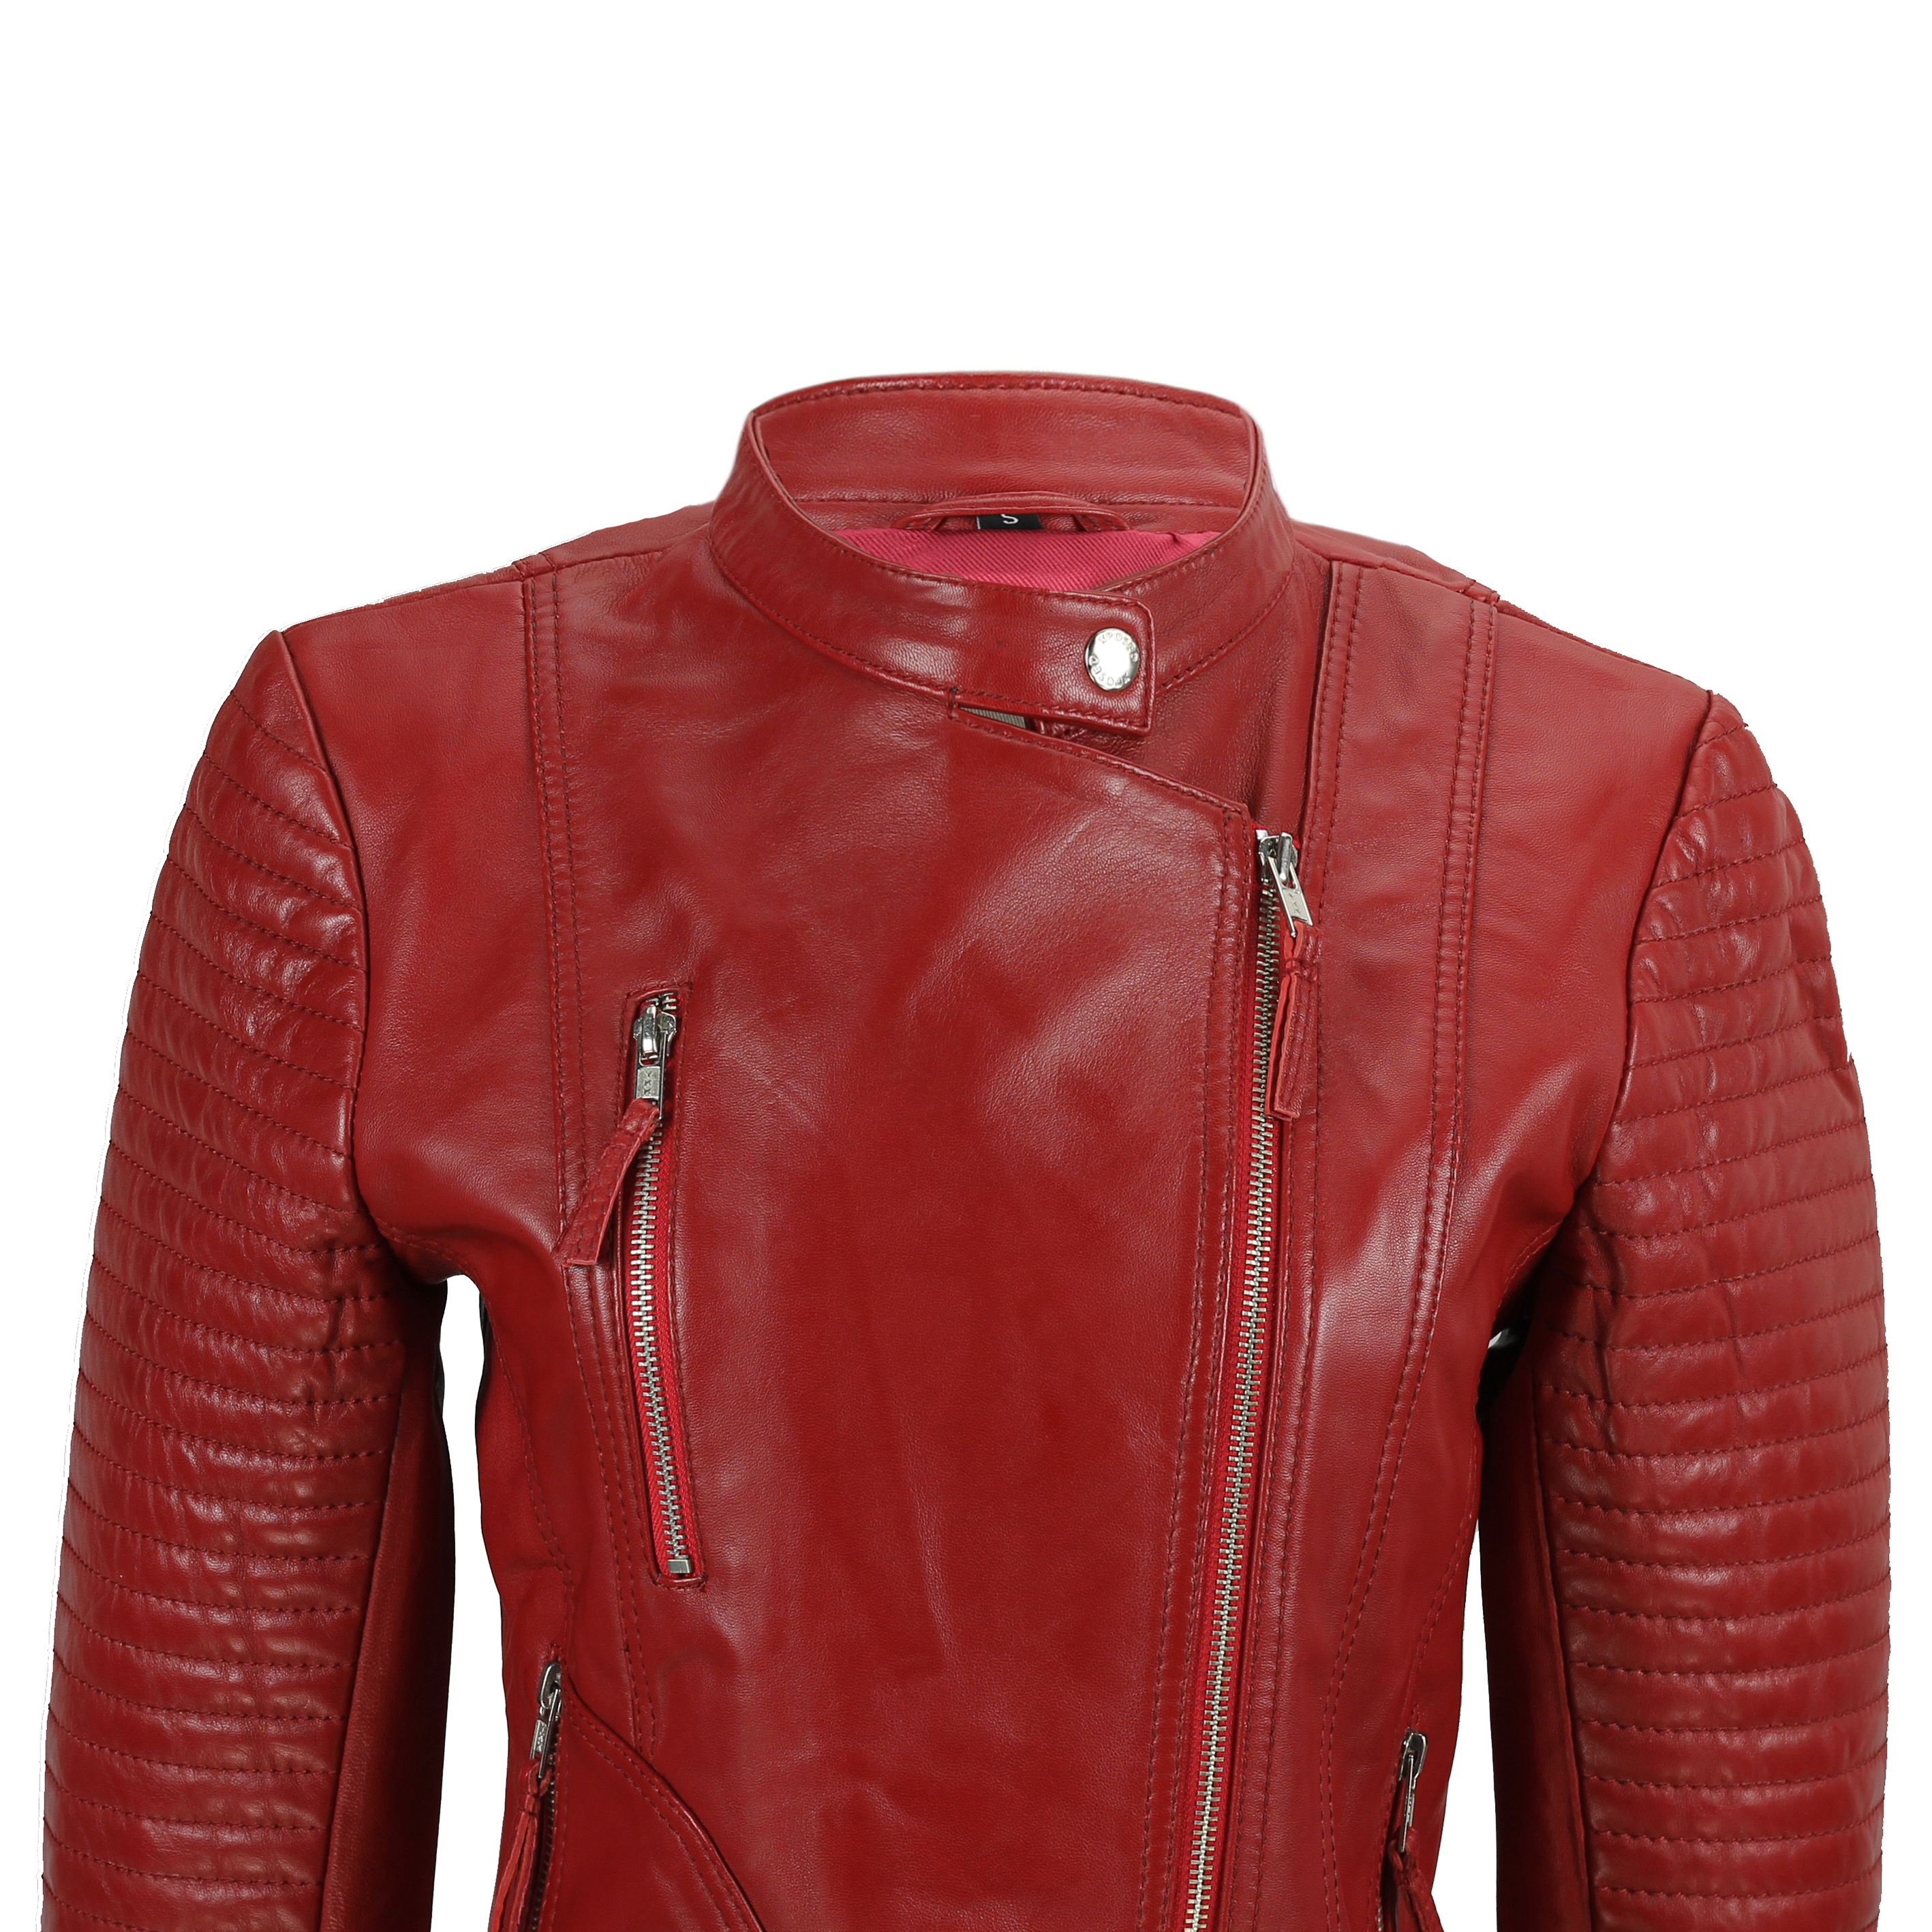 e23bfd8ea Details about Ladies Women's Real Soft Leather Biker Jacket Vintage Fitted  Style in Black Red